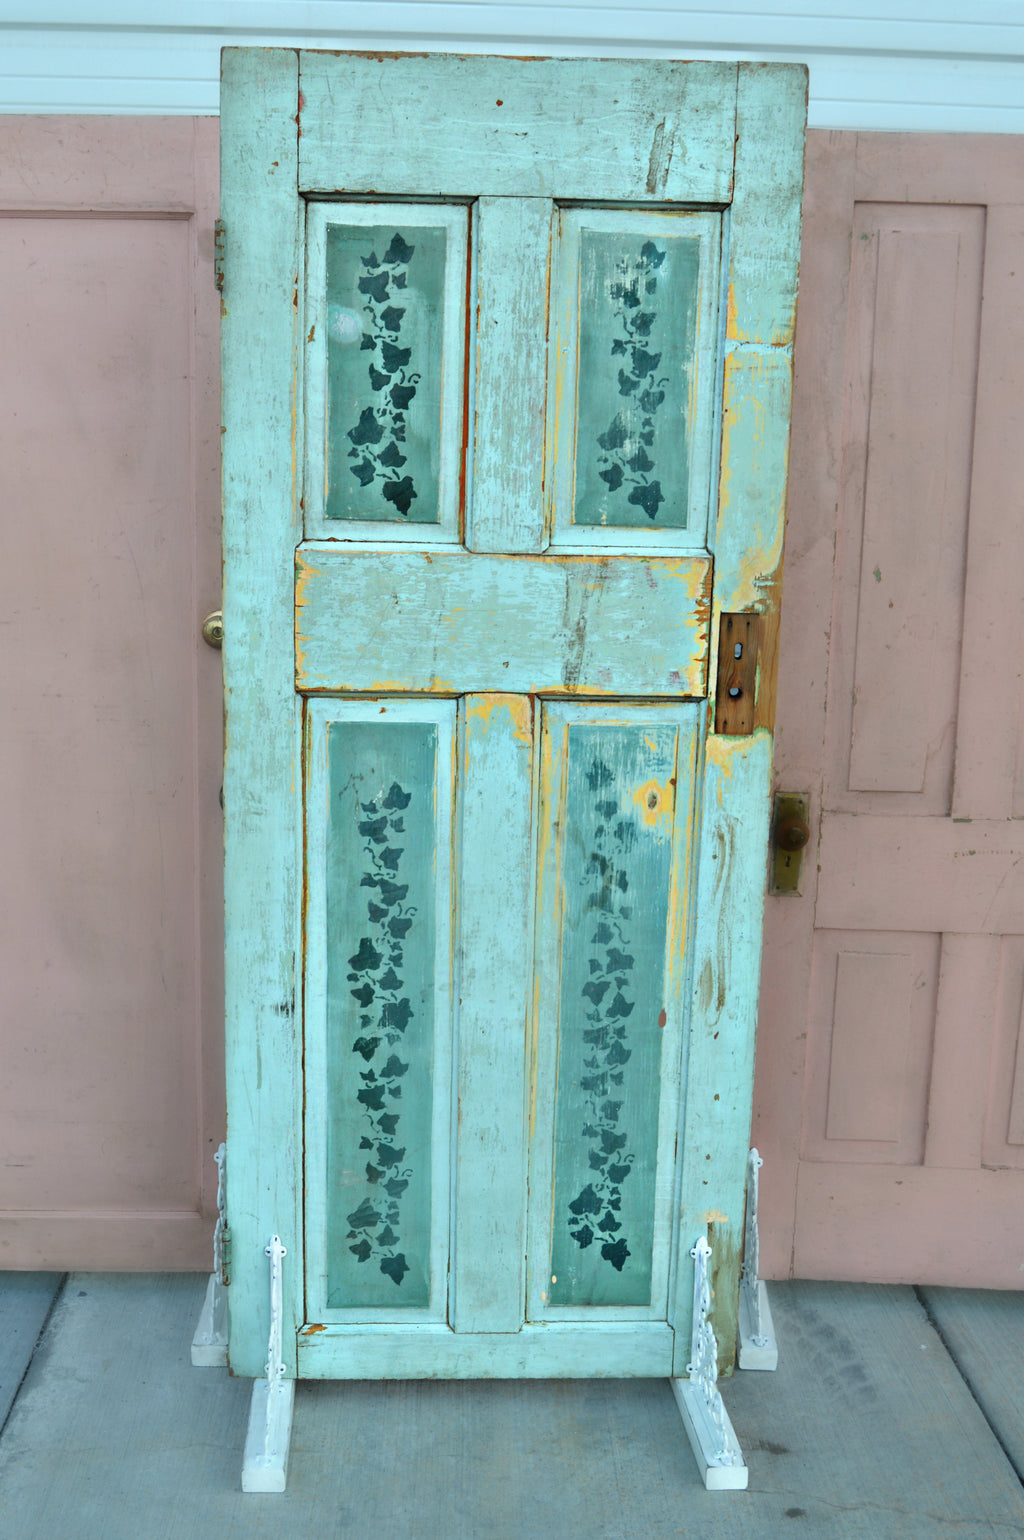 Vintage green door, Alice in Wonderland style